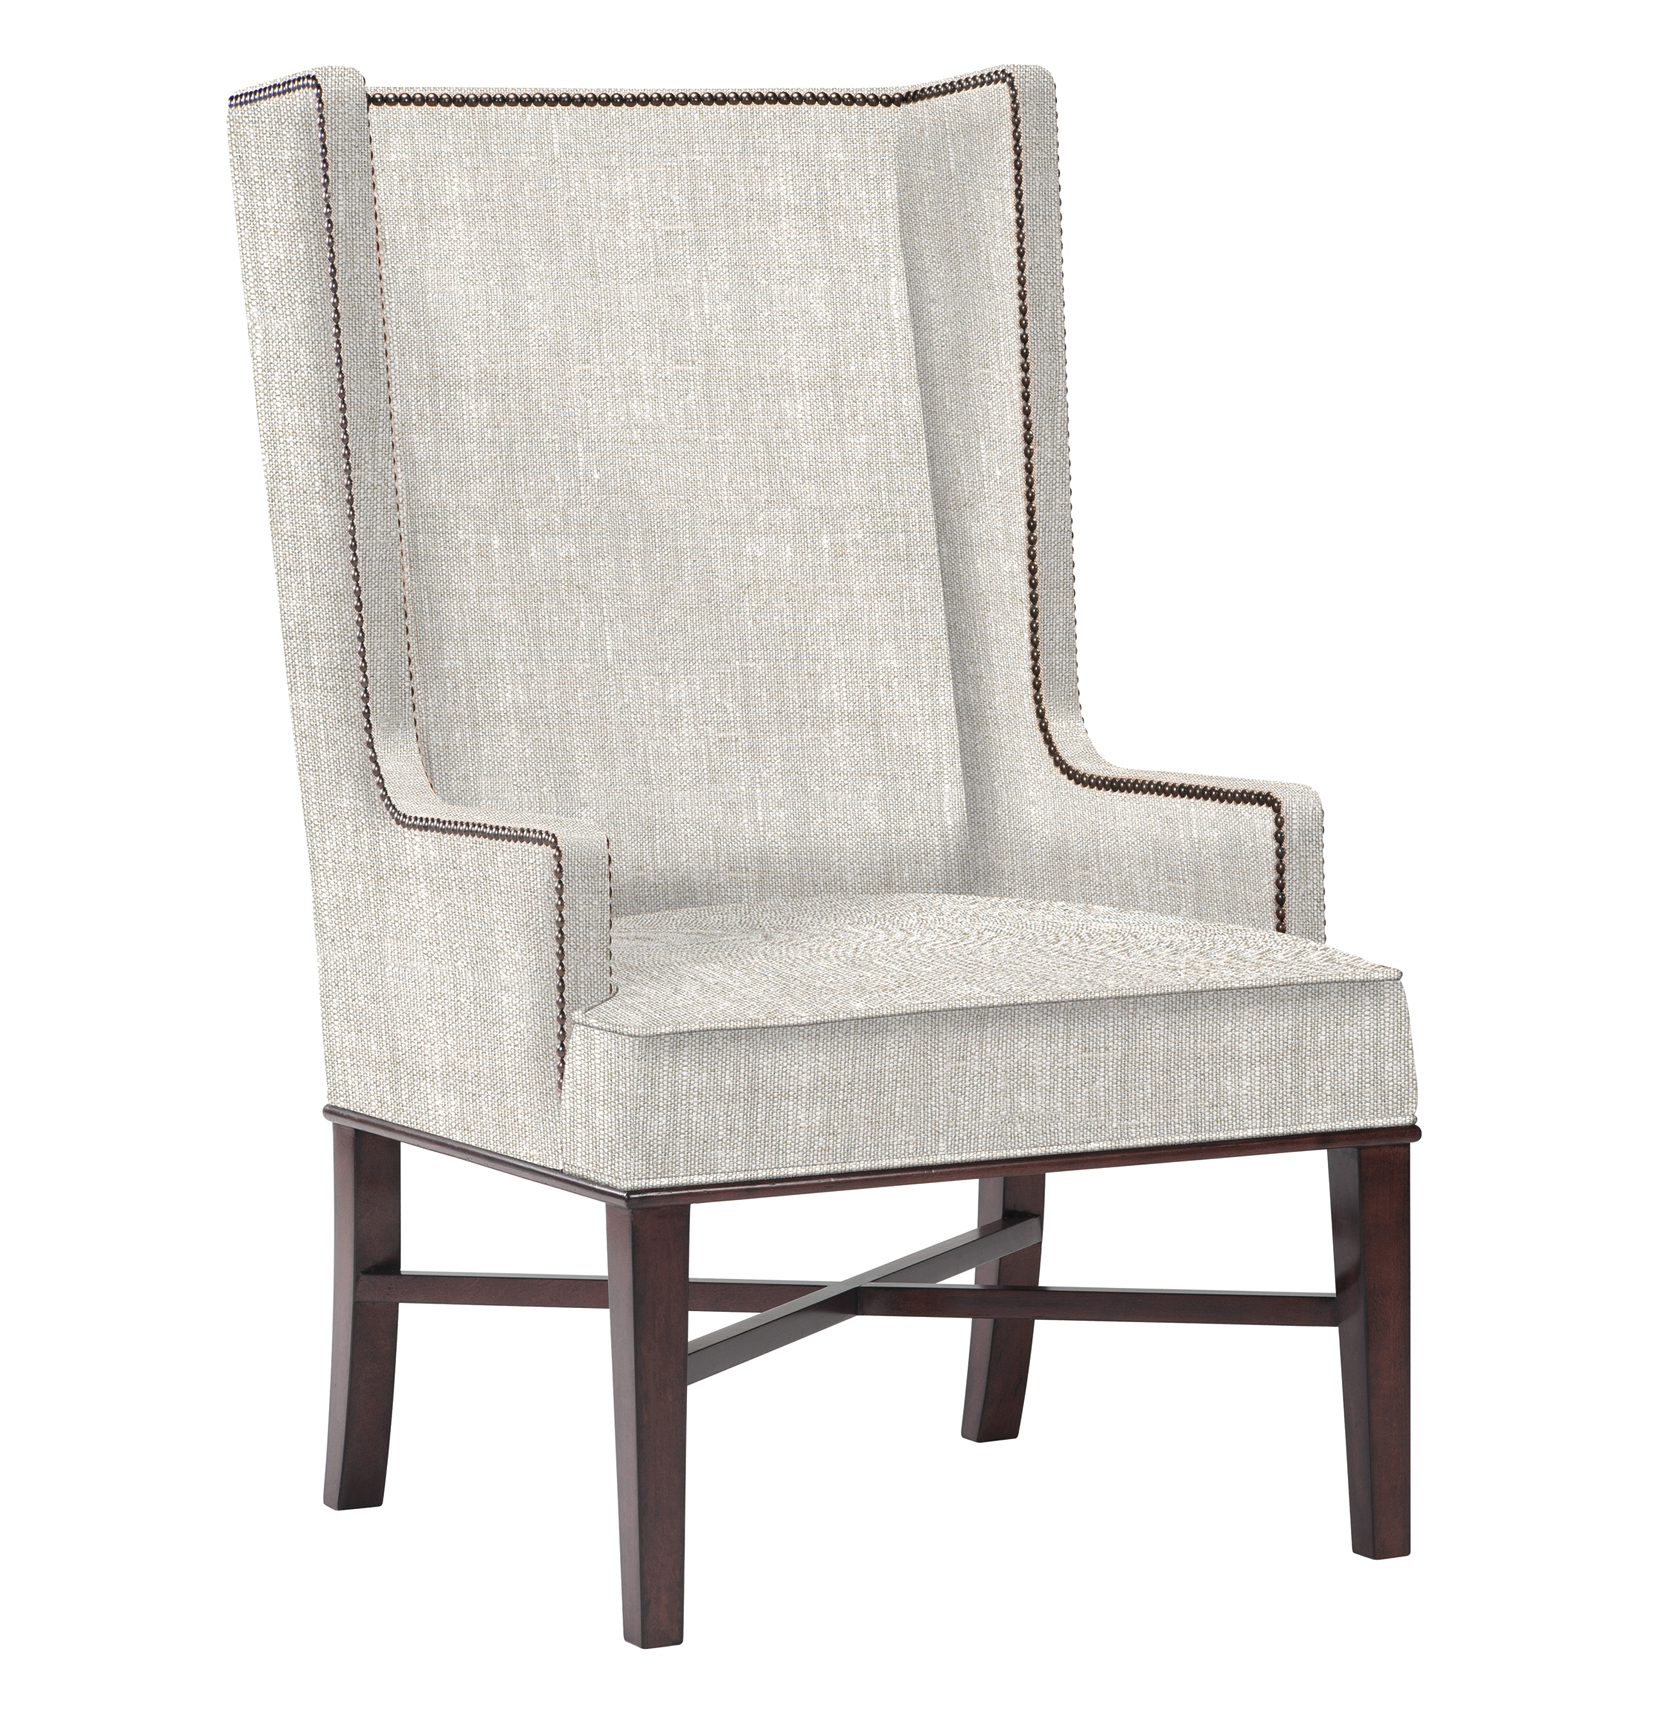 Image of: Wingback Dining Chair with Arms